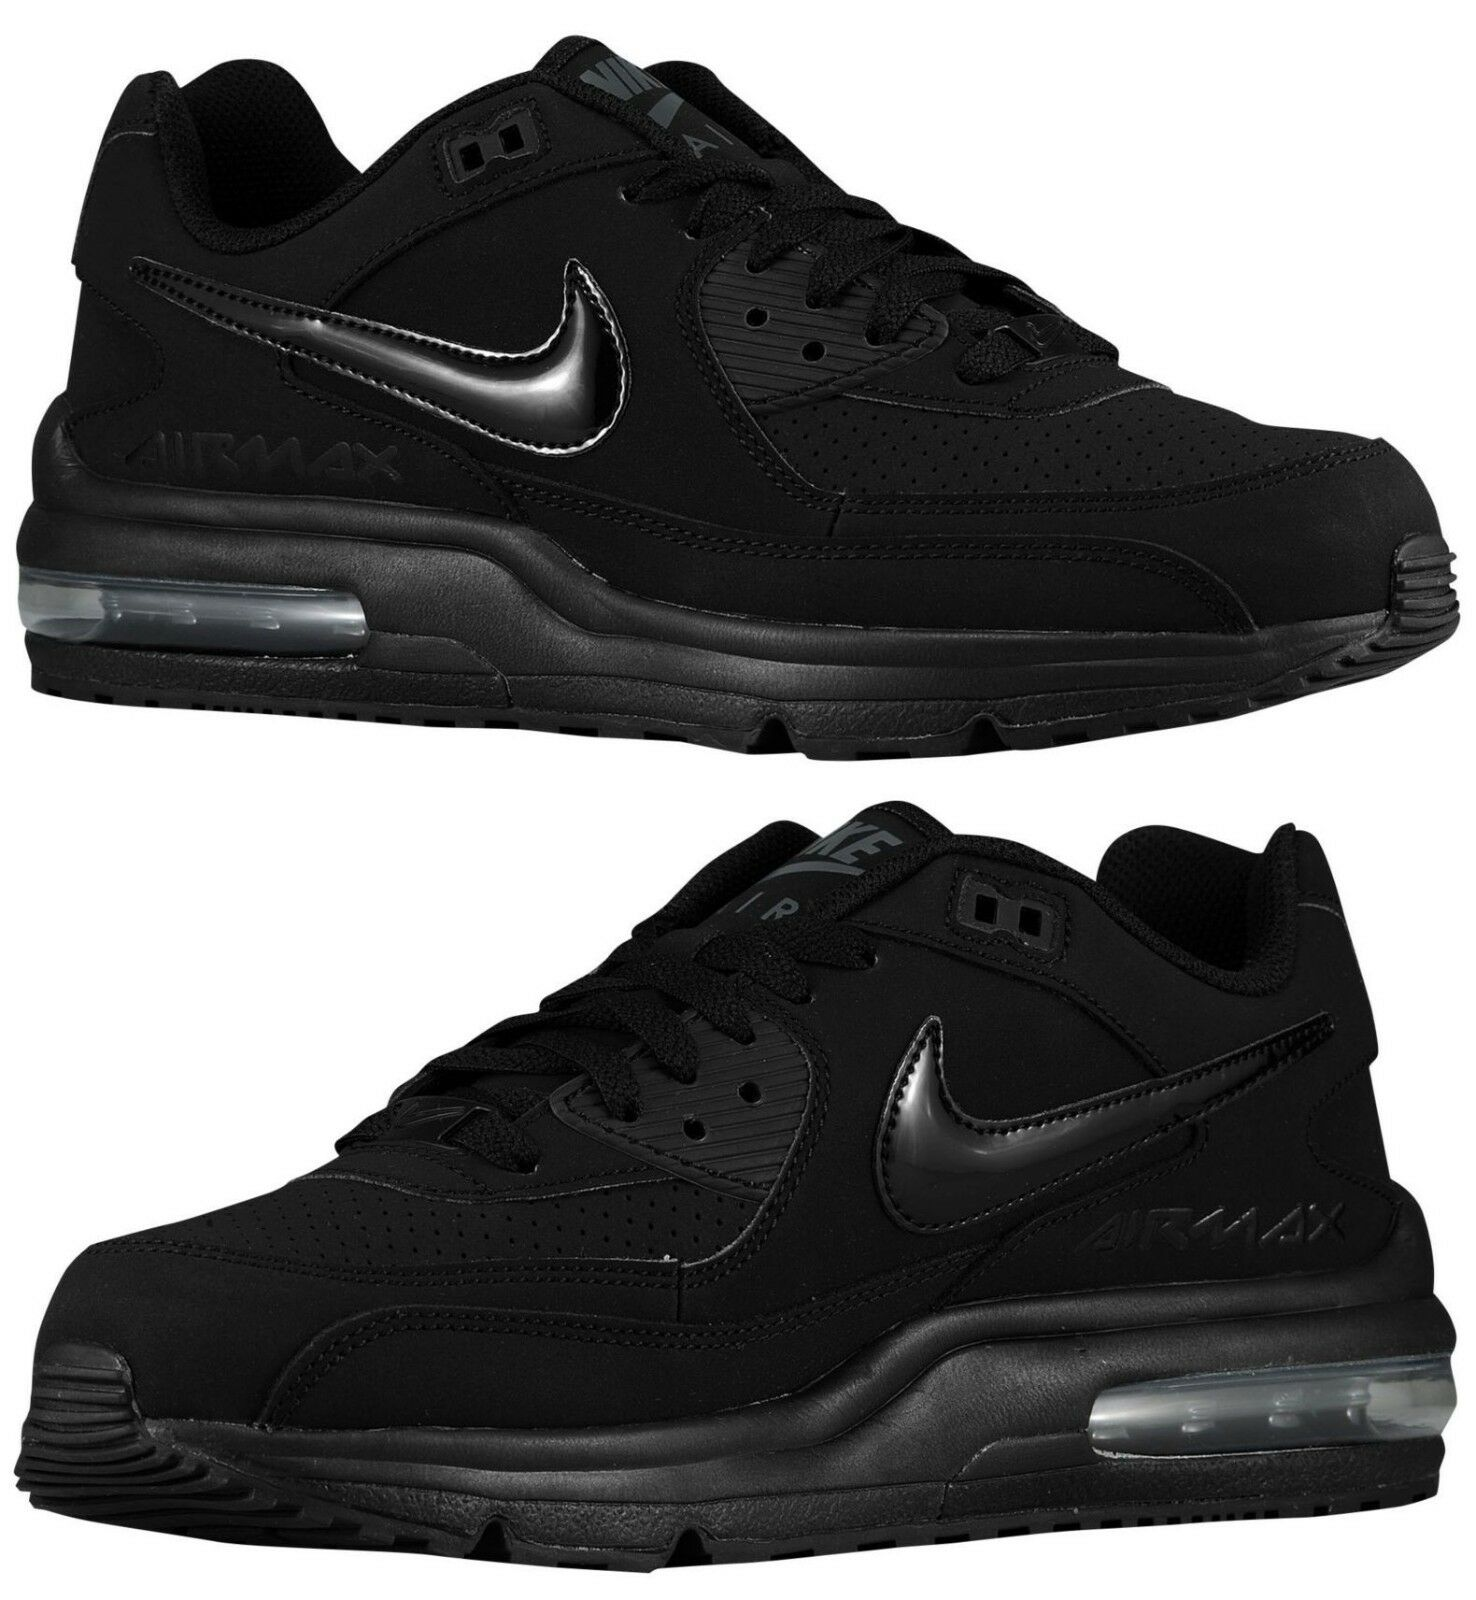 NIKE AIR MAX WRIGHT Homme SUEDE M RUNNING Noir - ANTHRACITE NEW IN BOX Taille